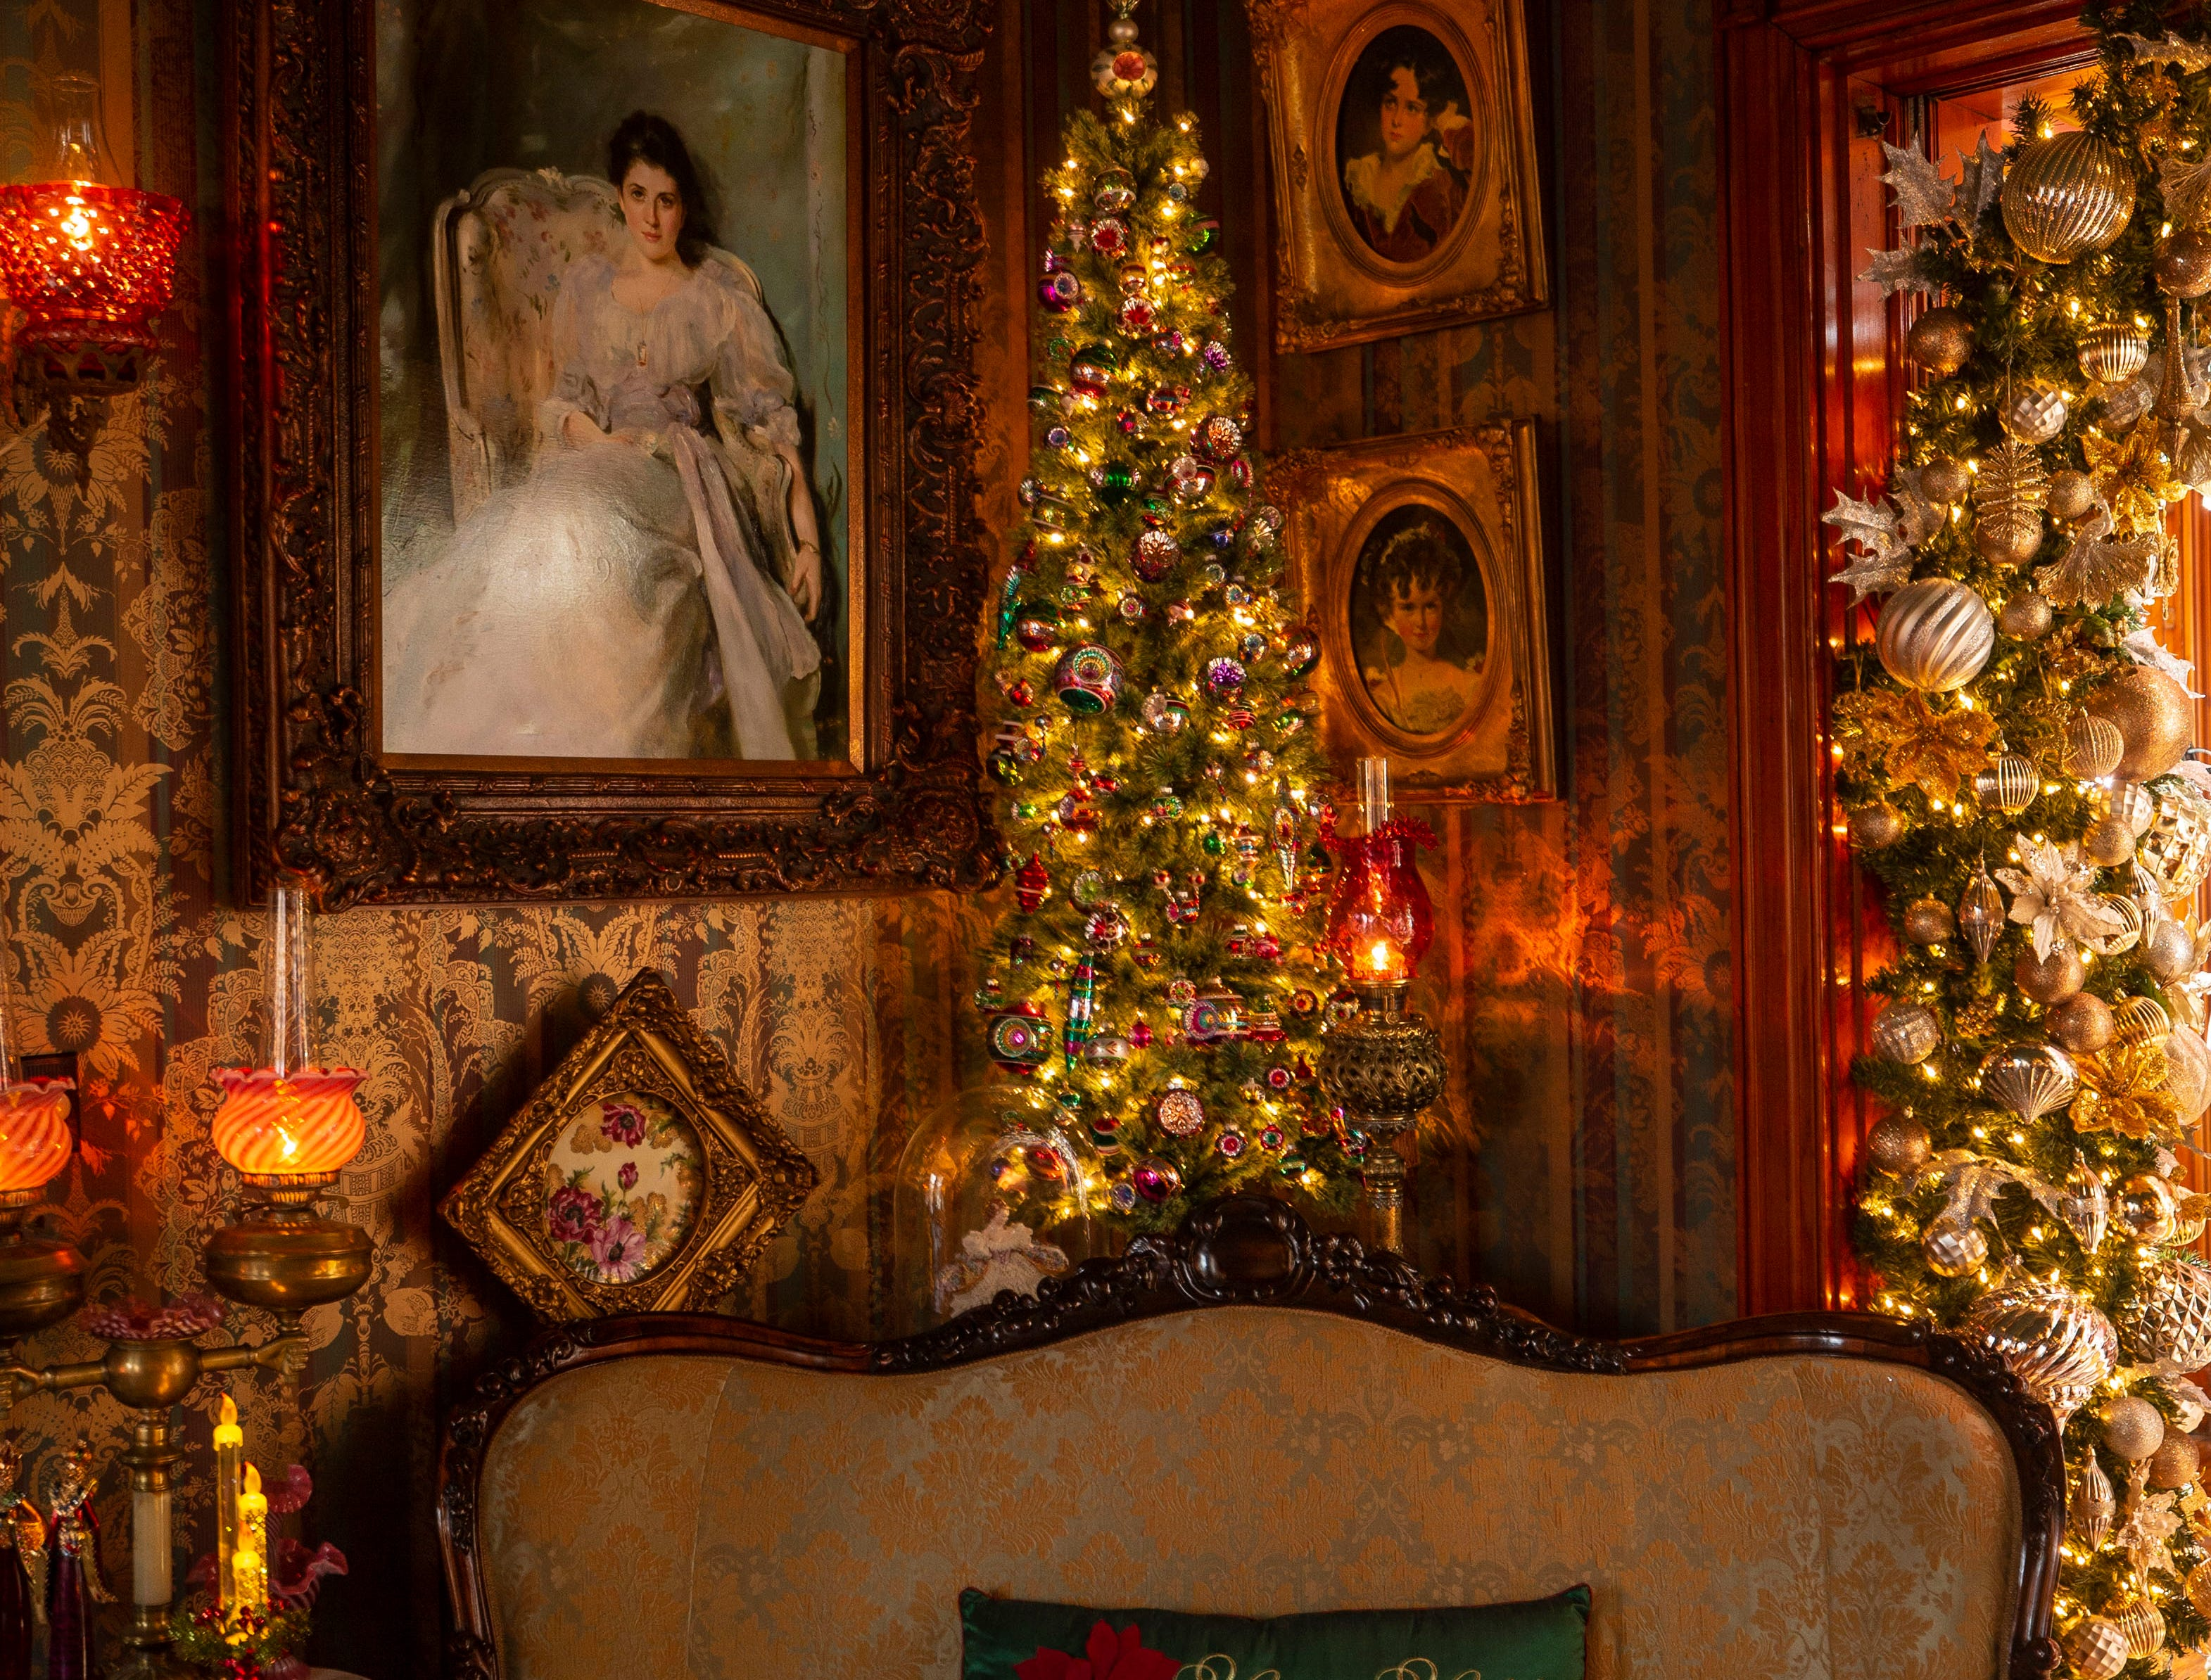 David Brown's Victorian-era, three-story home is filled with Christmas and Holiday lights, trees and ornaments that is part of the Old Louisville Holiday Home Tour.